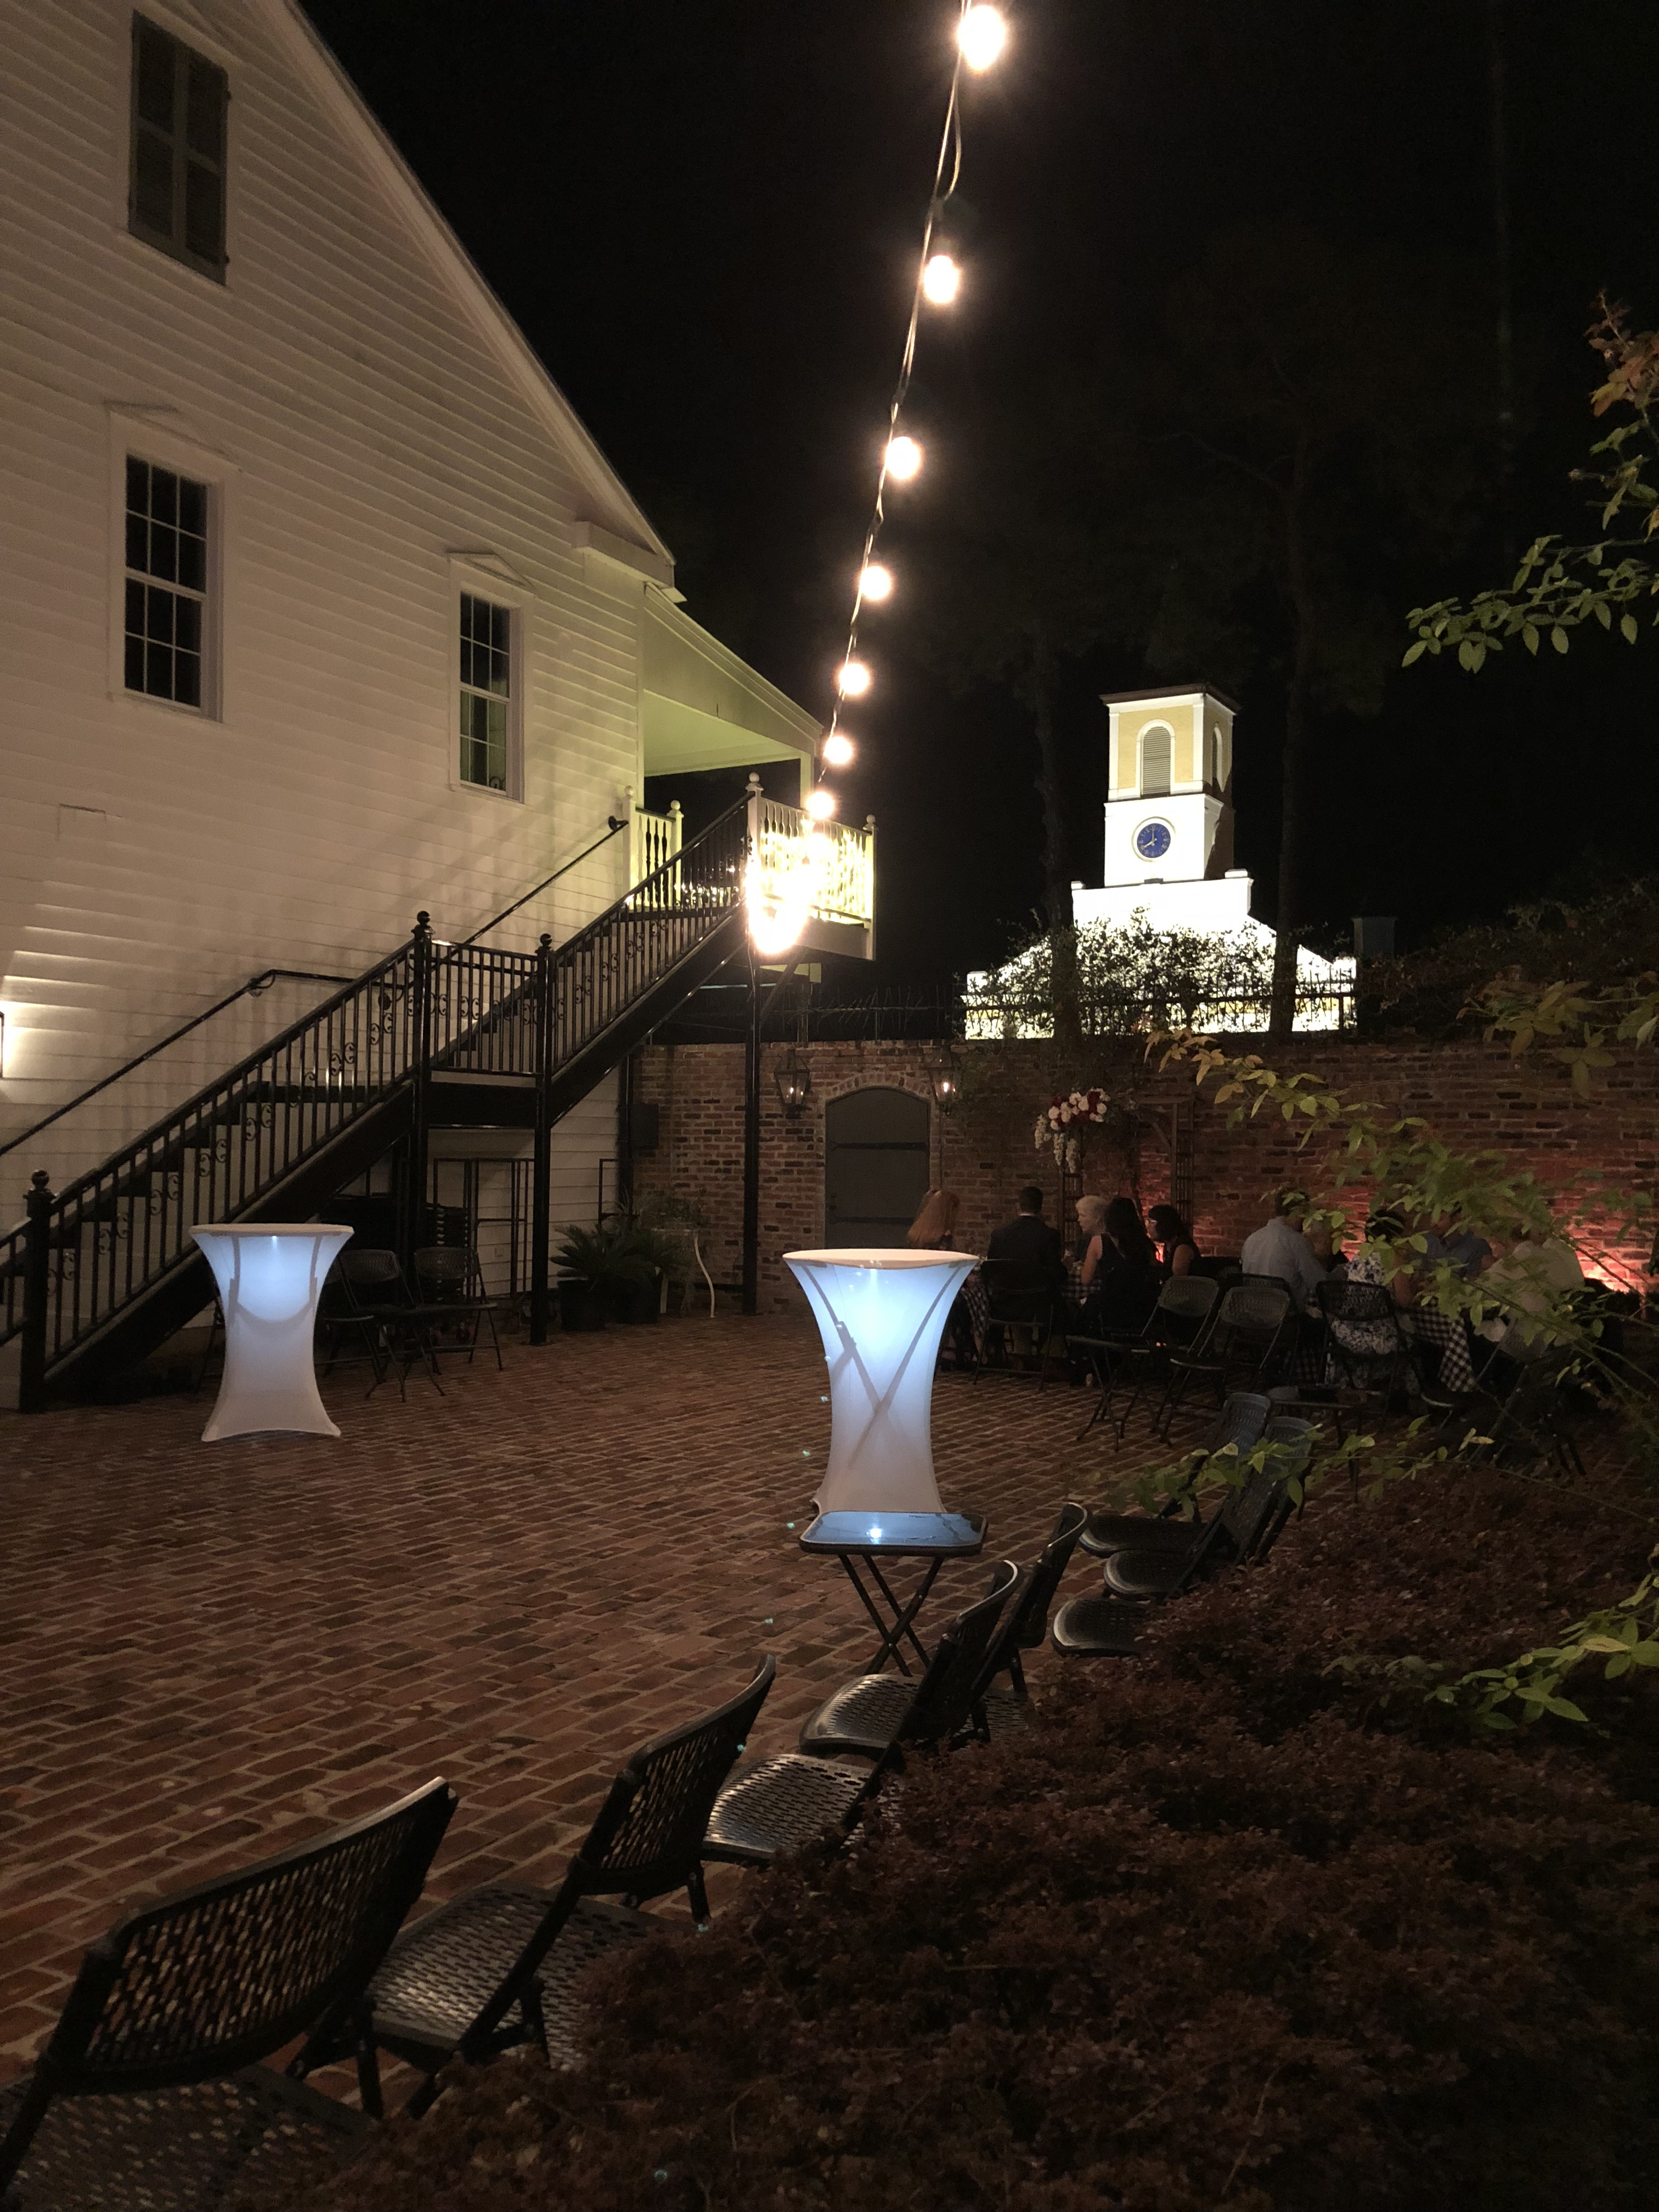 A night view in the courtyard at wedding venue, Maison de Tours, located near Lafayette, Louisiana in St. Martinville.